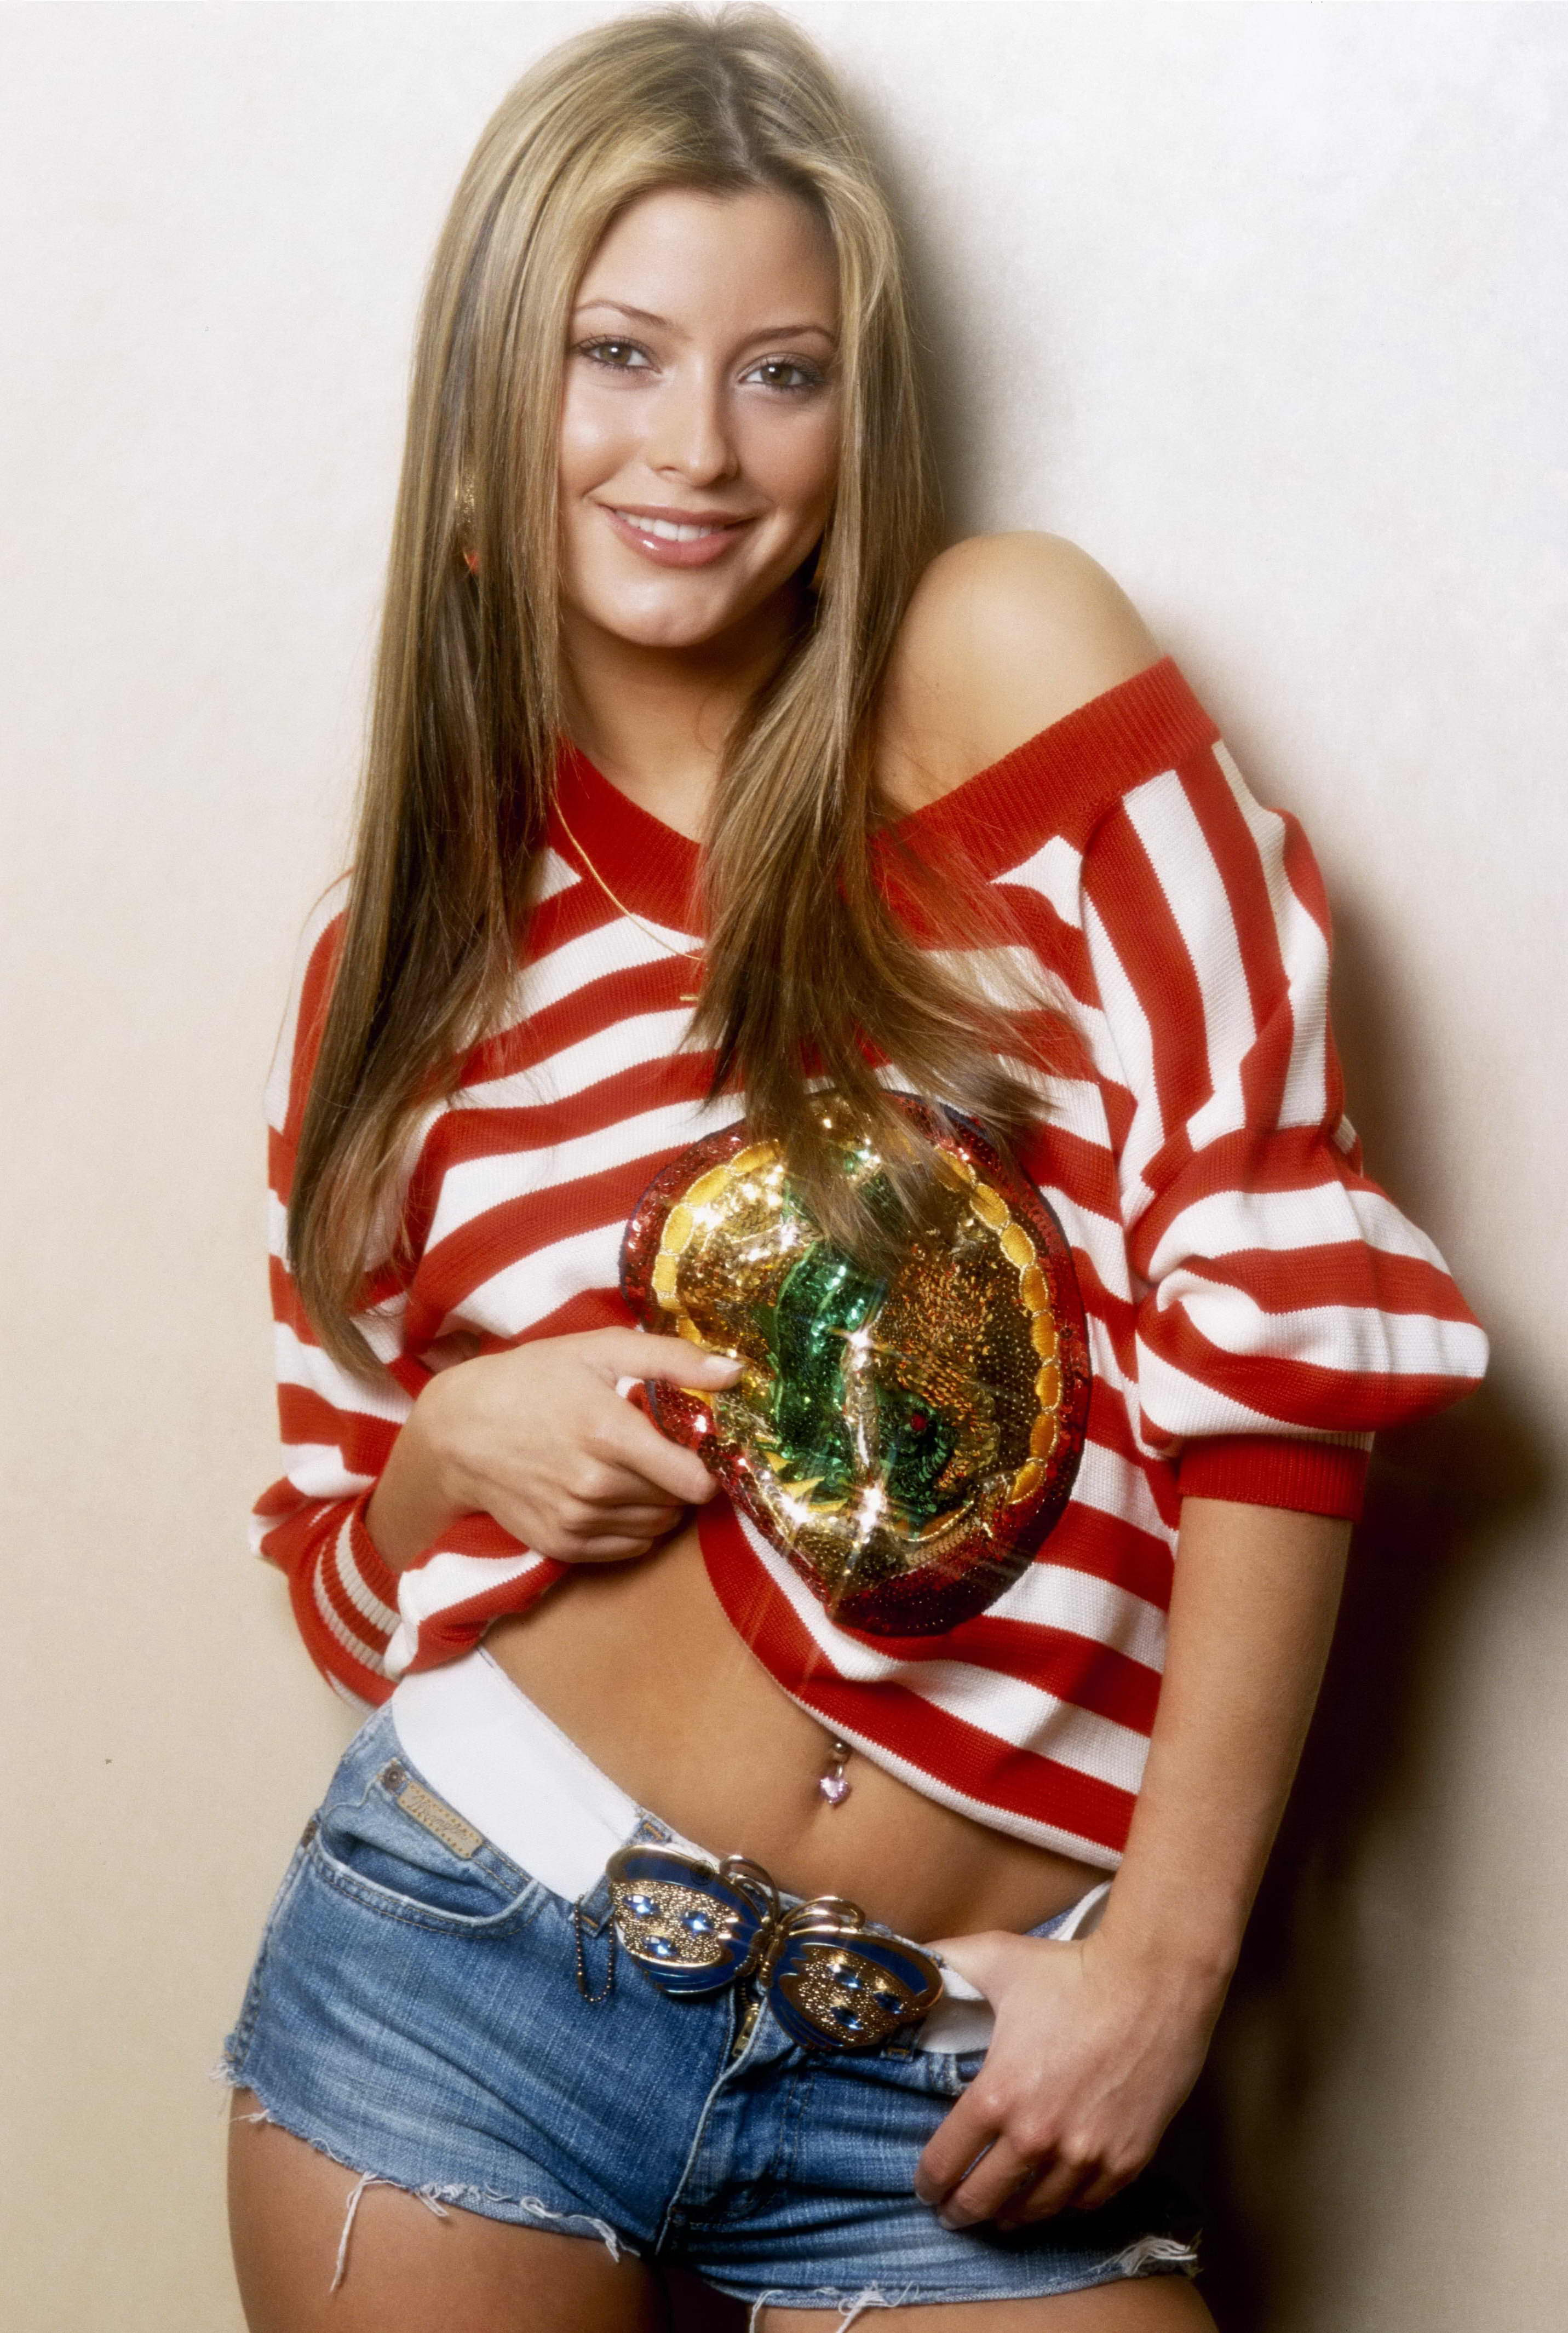 Holly Valance Photo 127 Of 270 Pics Wallpaper Photo 71631 Theplace2